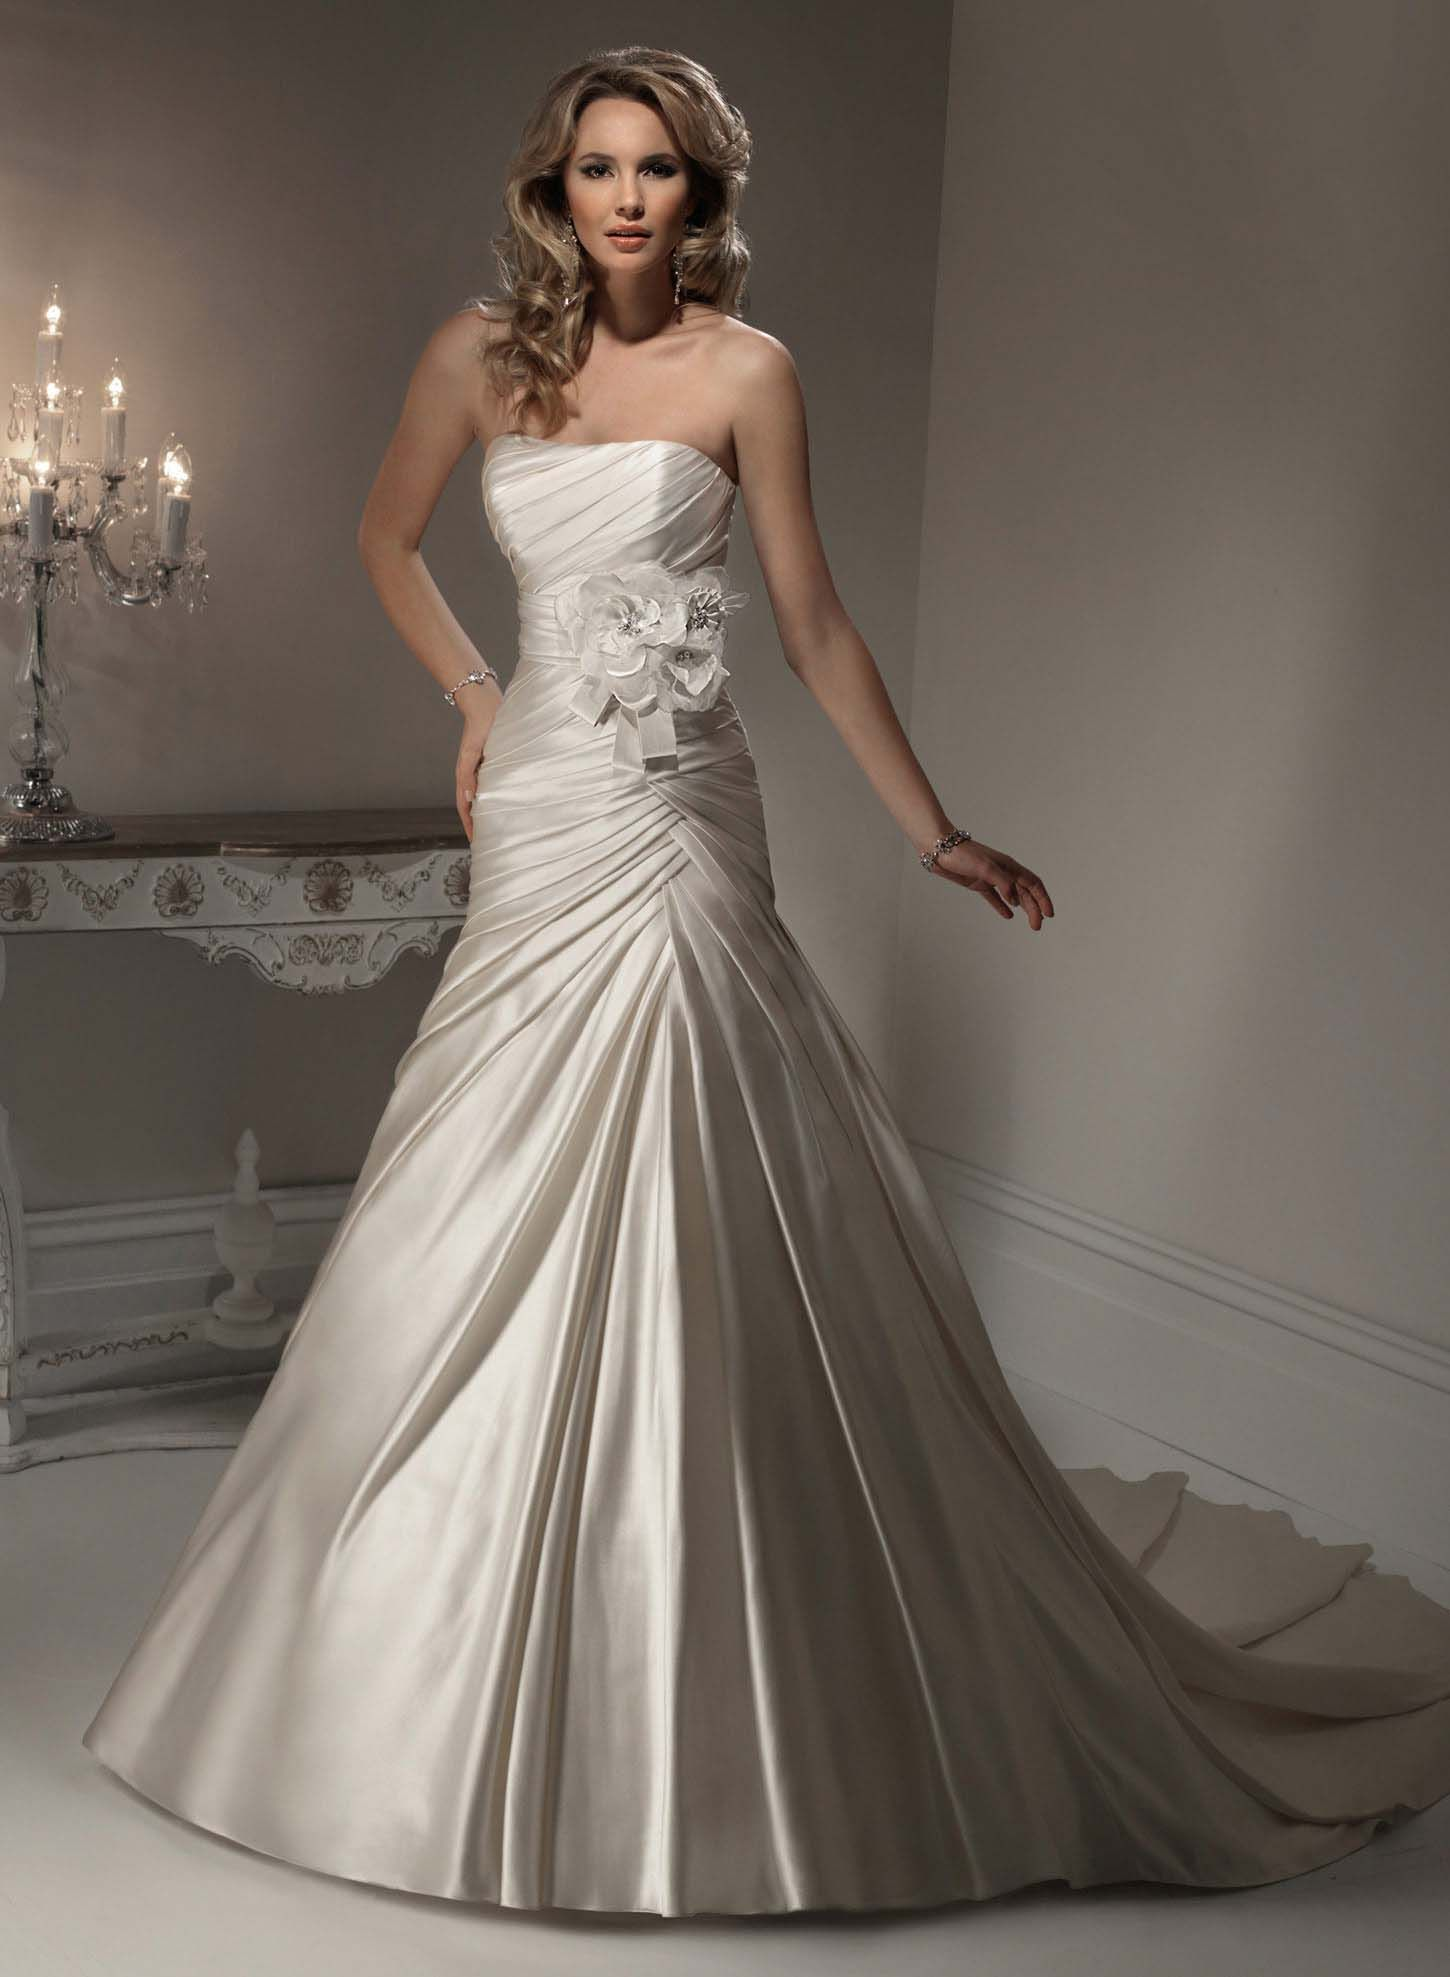 Maggie Sottero : Cleo | Wedding Gowns | Pinterest | Maggie sottero ...